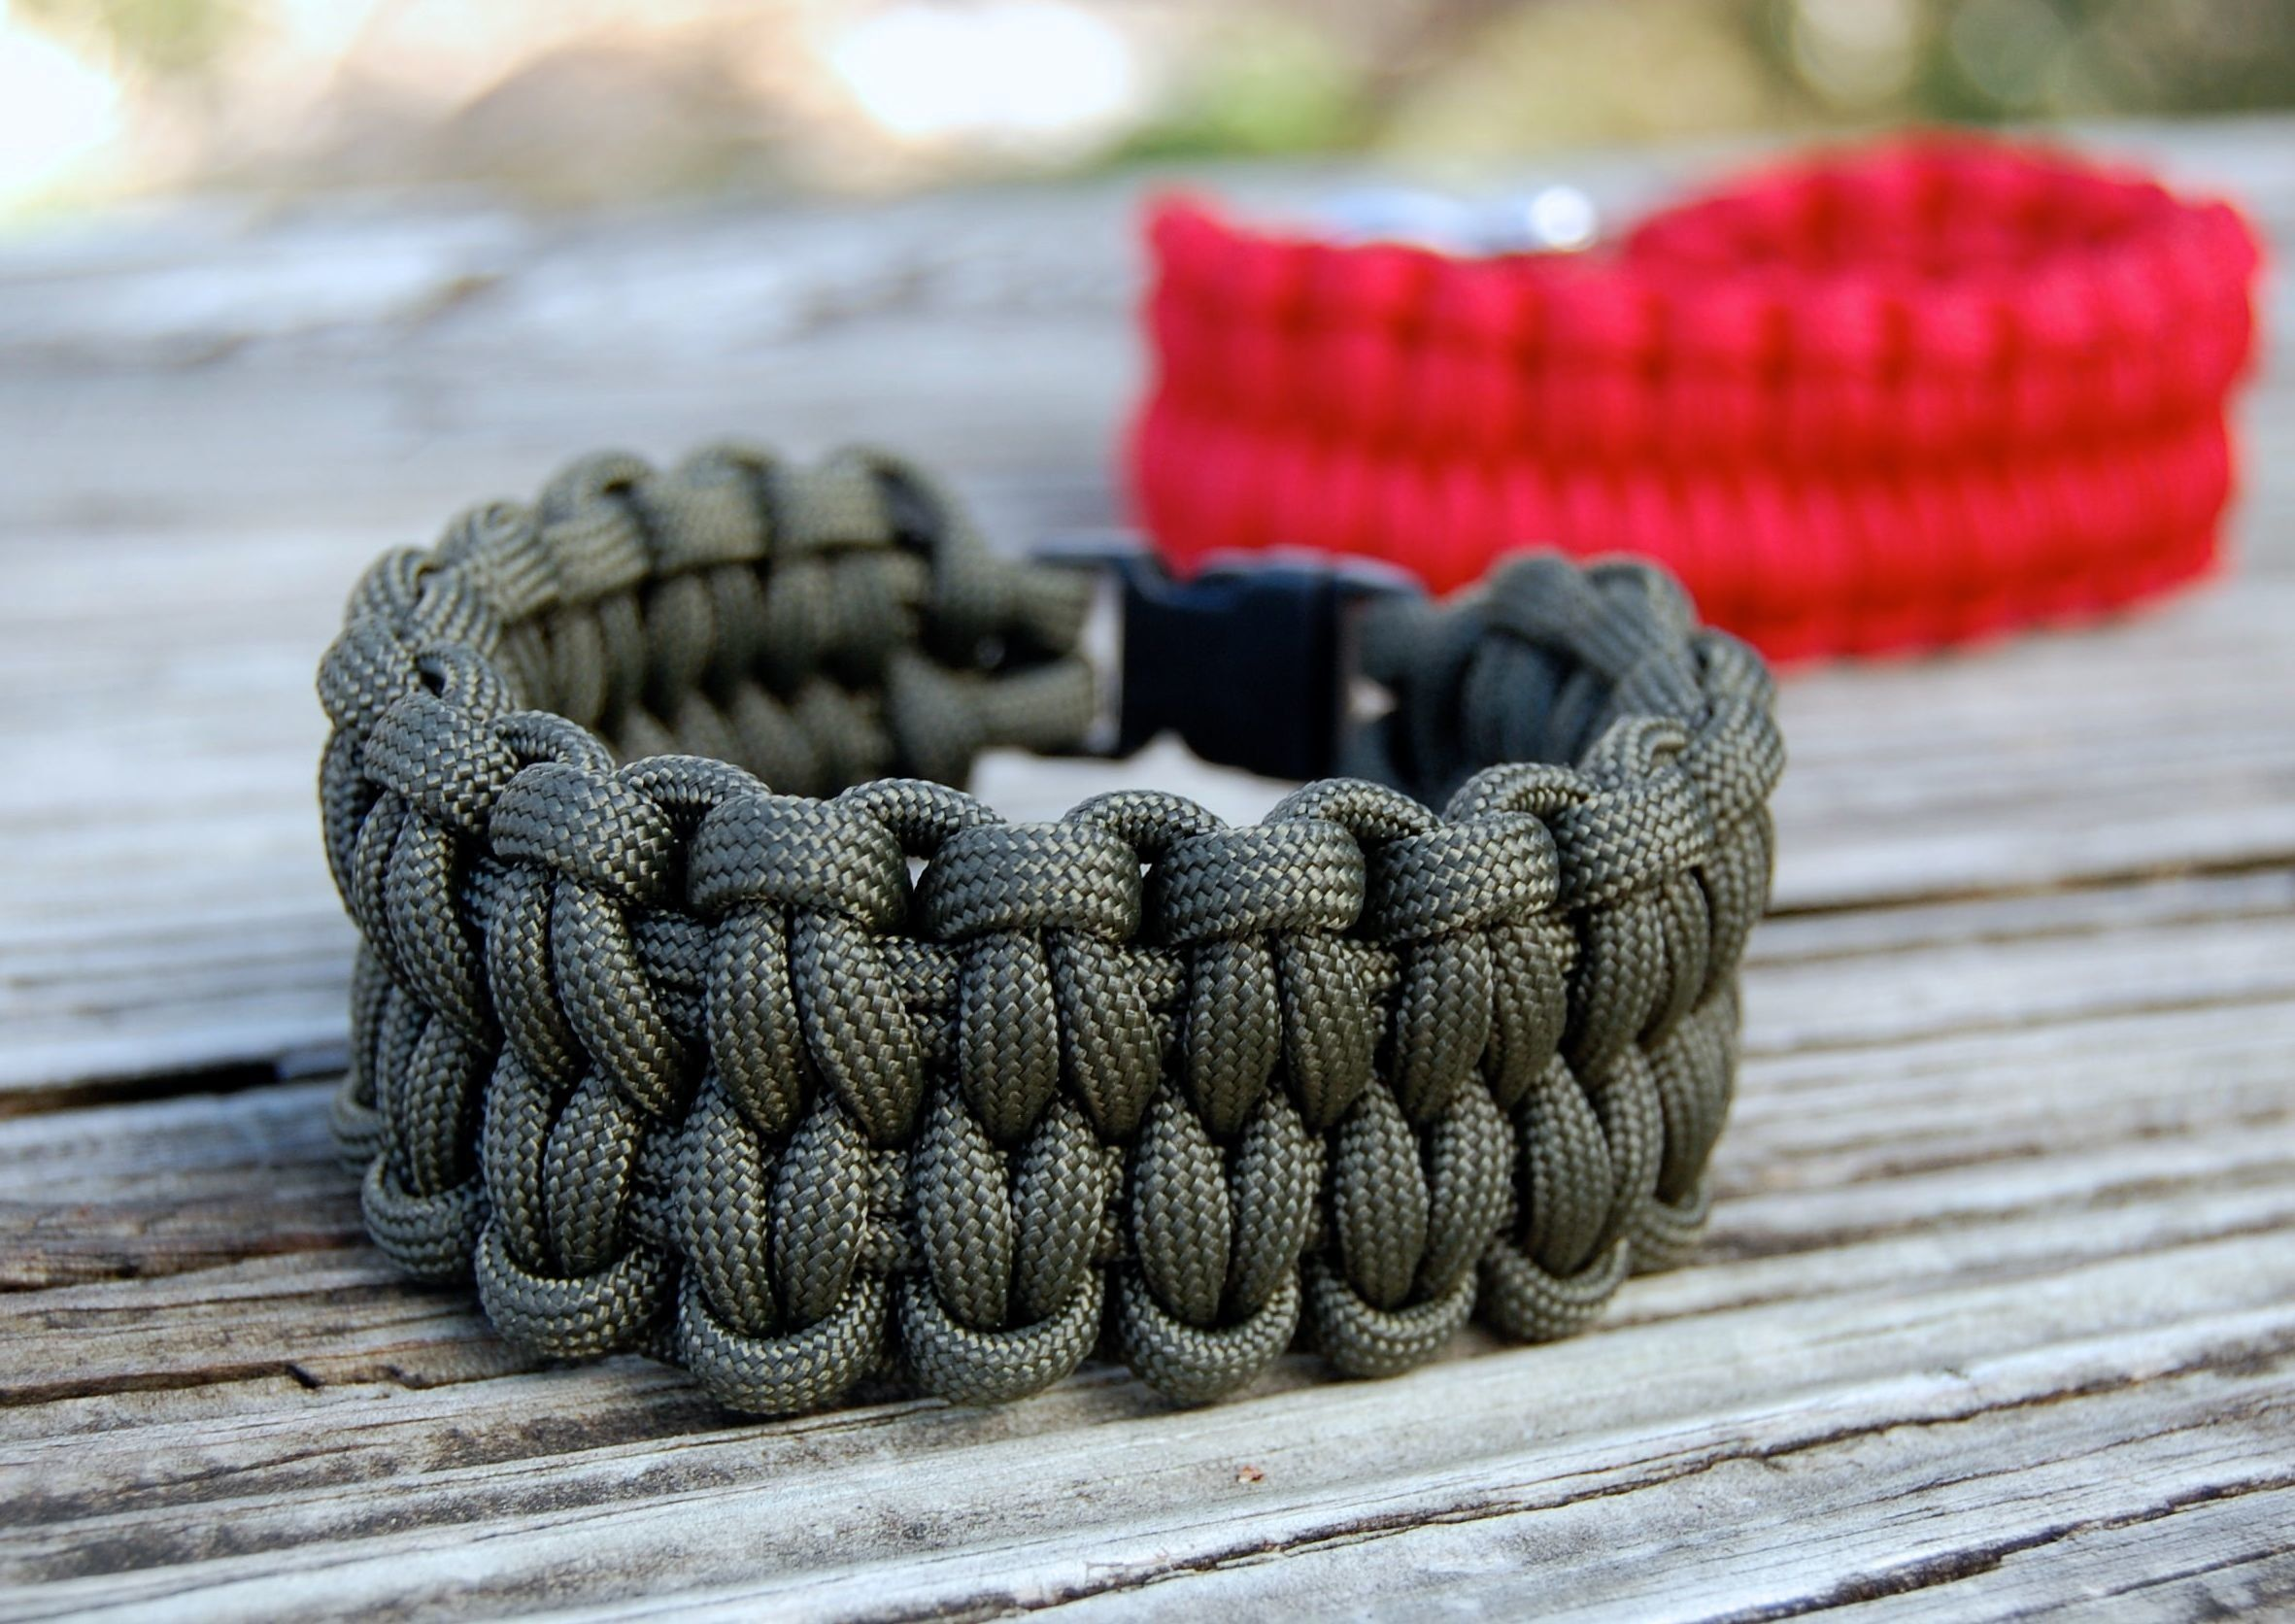 How to make a paracord bracelet happy bracelets and for Paracord stuff to make